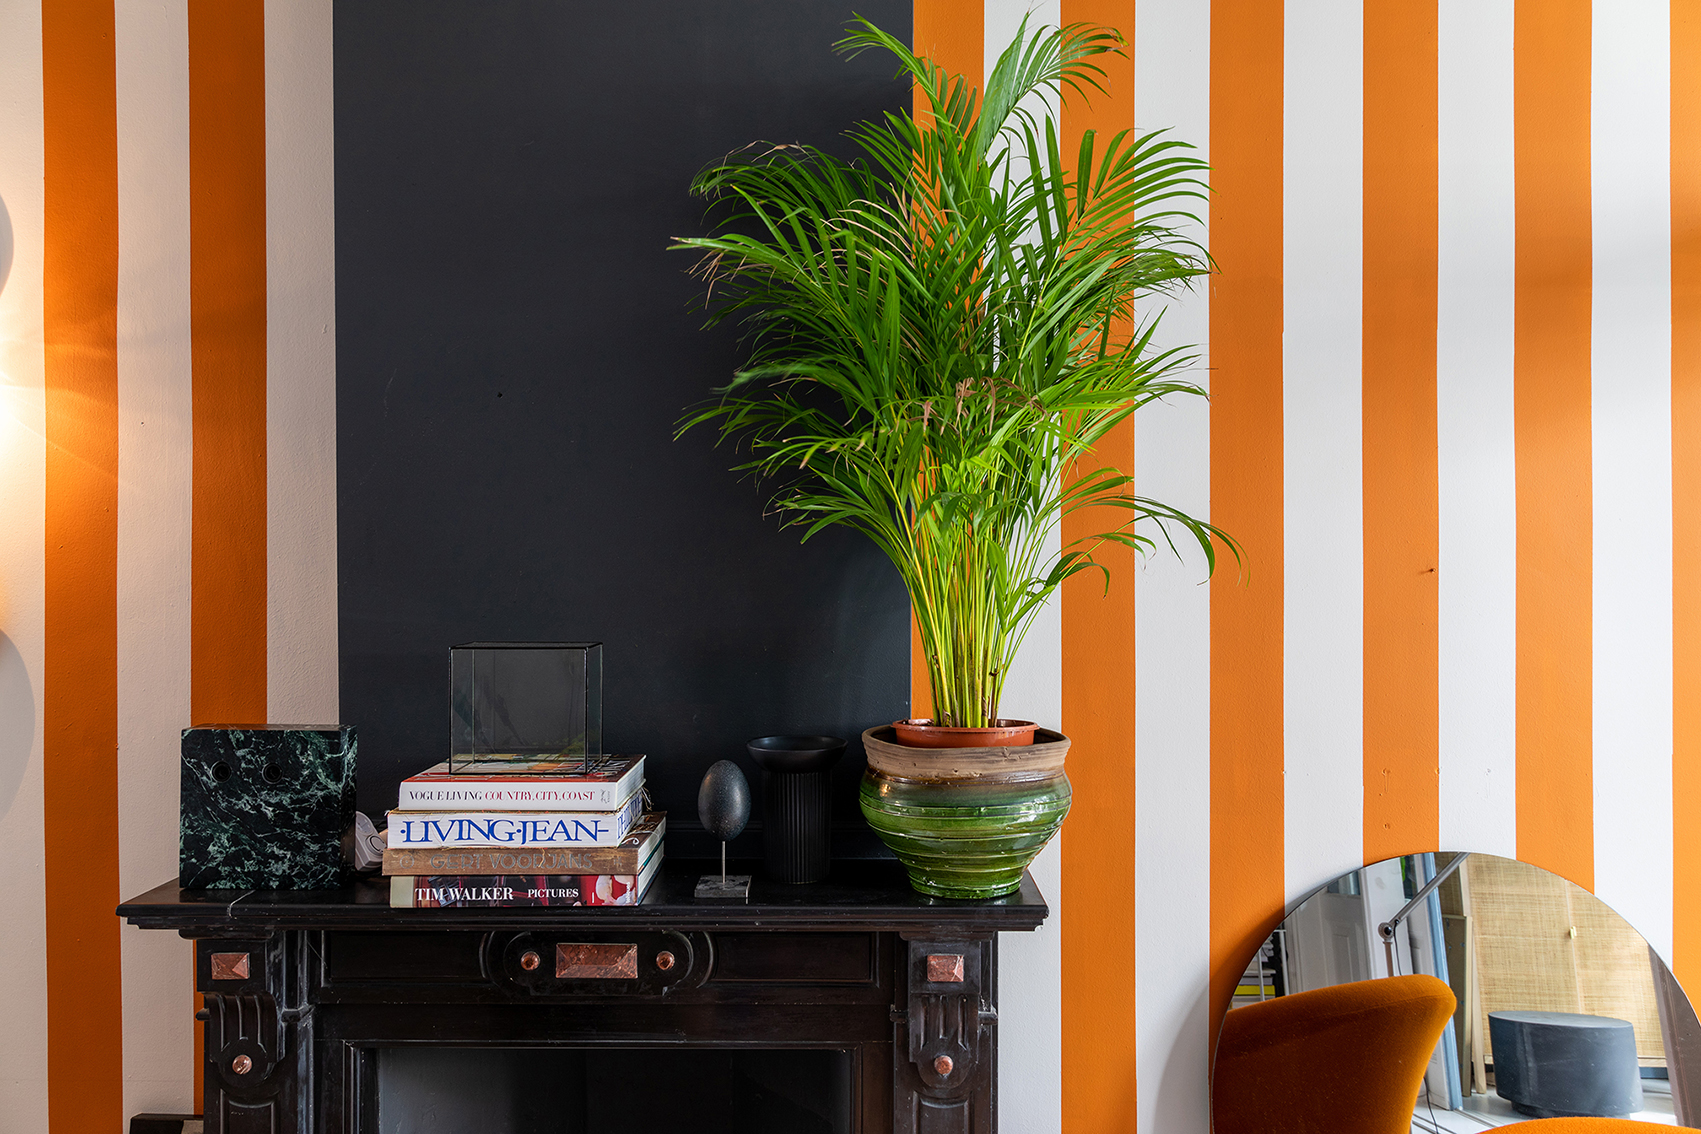 THEO BERT POT STRIPES INTERIOR DESIGN STYLIST STRIJPEN MUUR VERF MAKE OVER BINNENSTE BUITEN THE NICE STUFF COLLECTOR 8.jpg